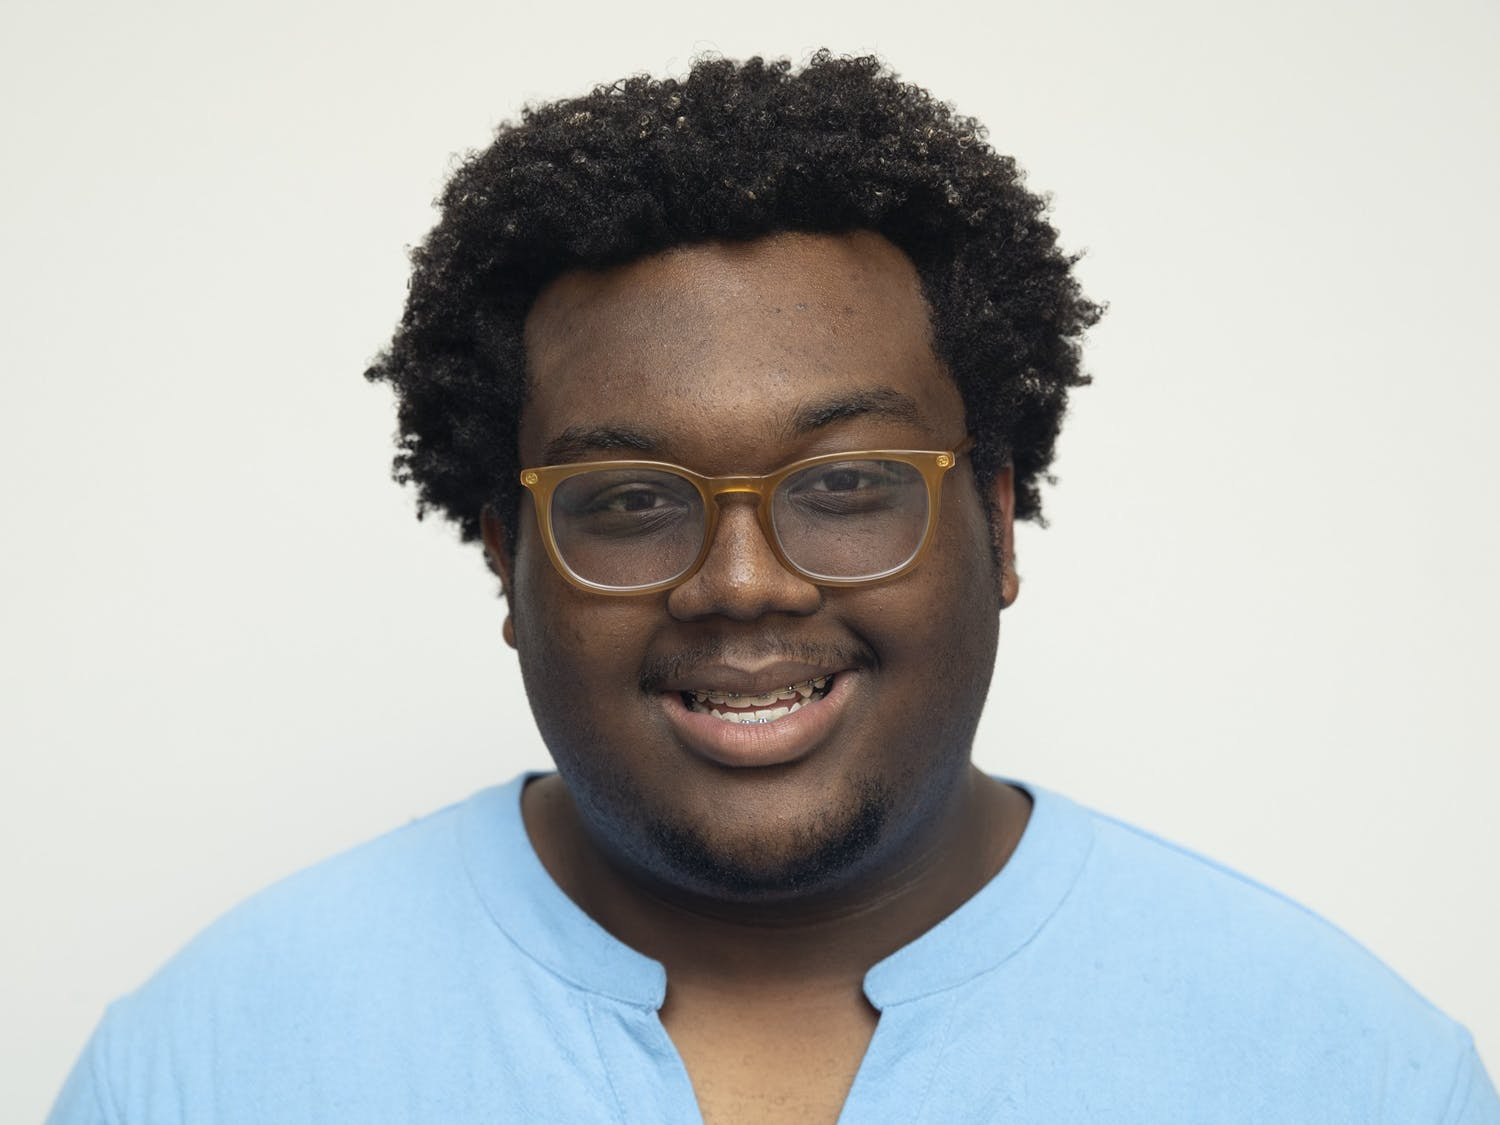 UNC sophomore Lamar Richards, chair of the Commission on Campus Equality and Student Equity, poses for a portrait on Sunday, Sept. 27, 2020.